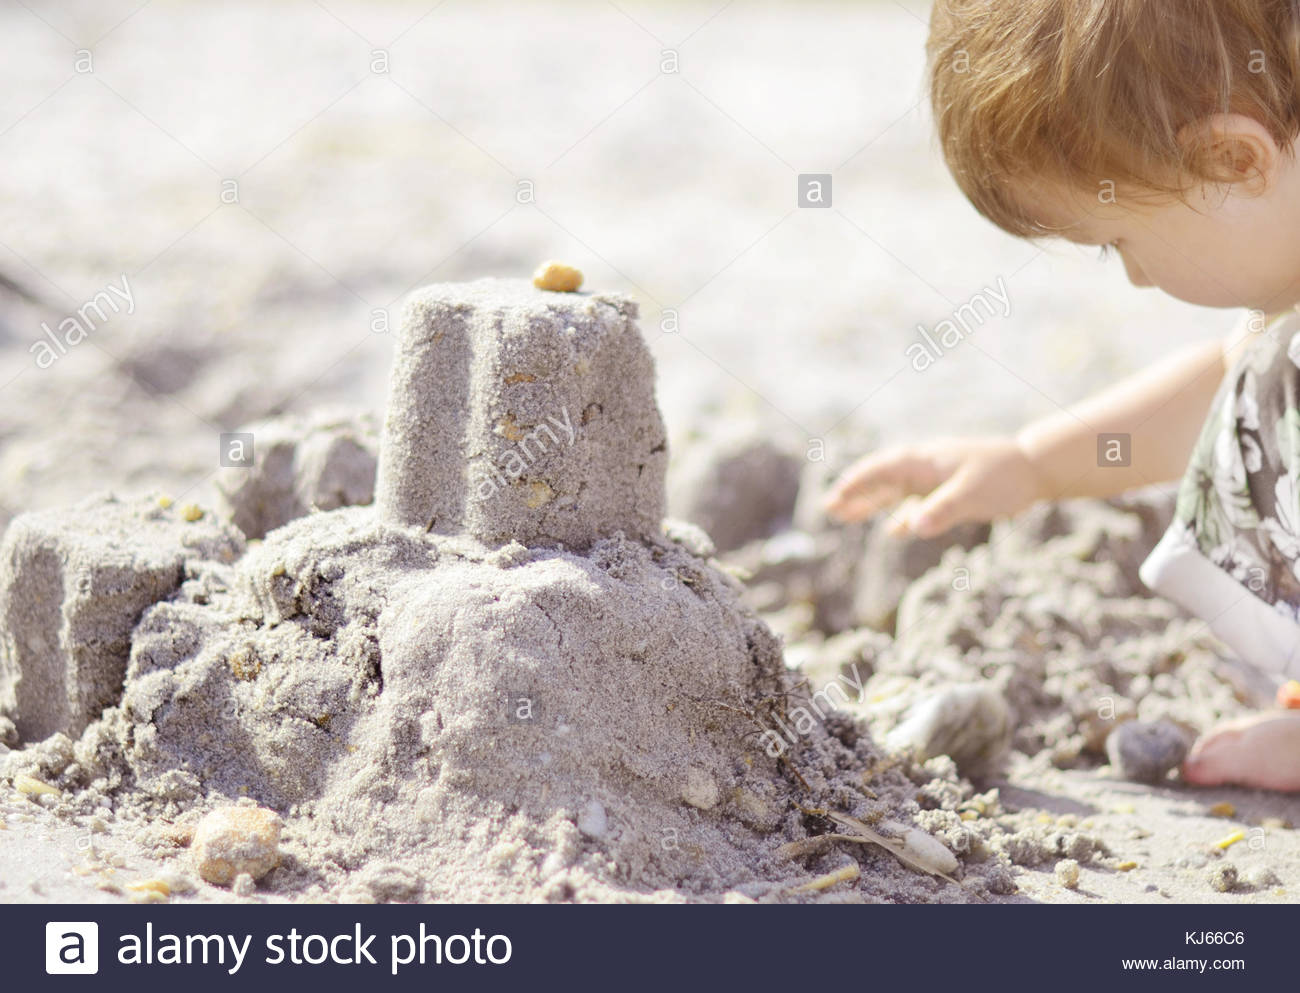 Child making sand castle - Stock Image